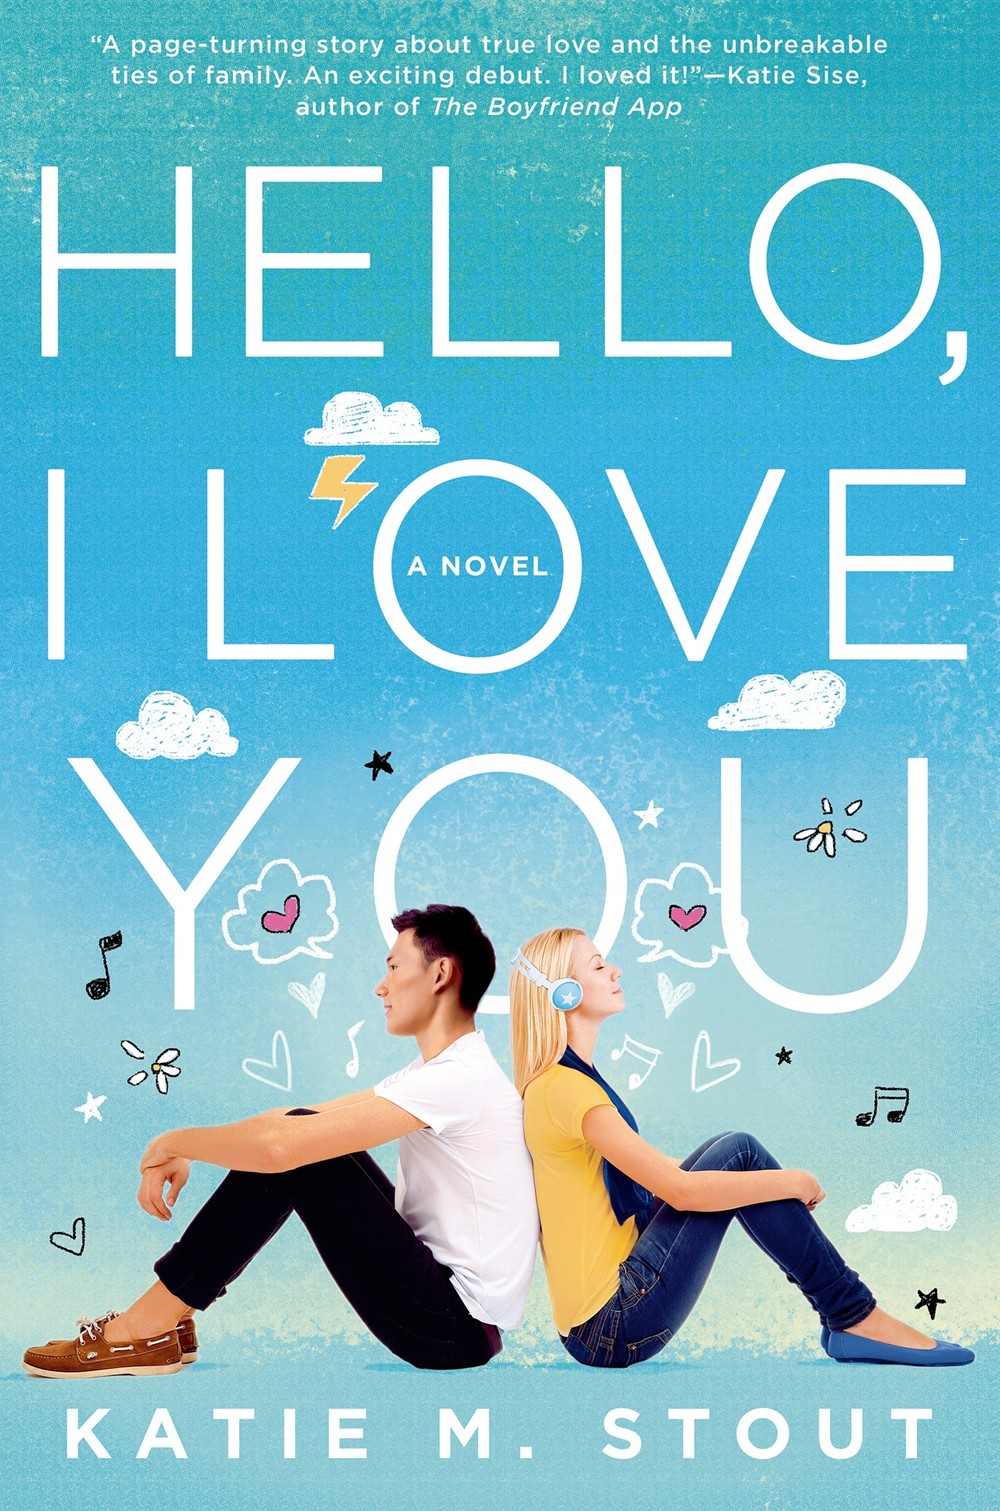 Hello, I Love You book cover